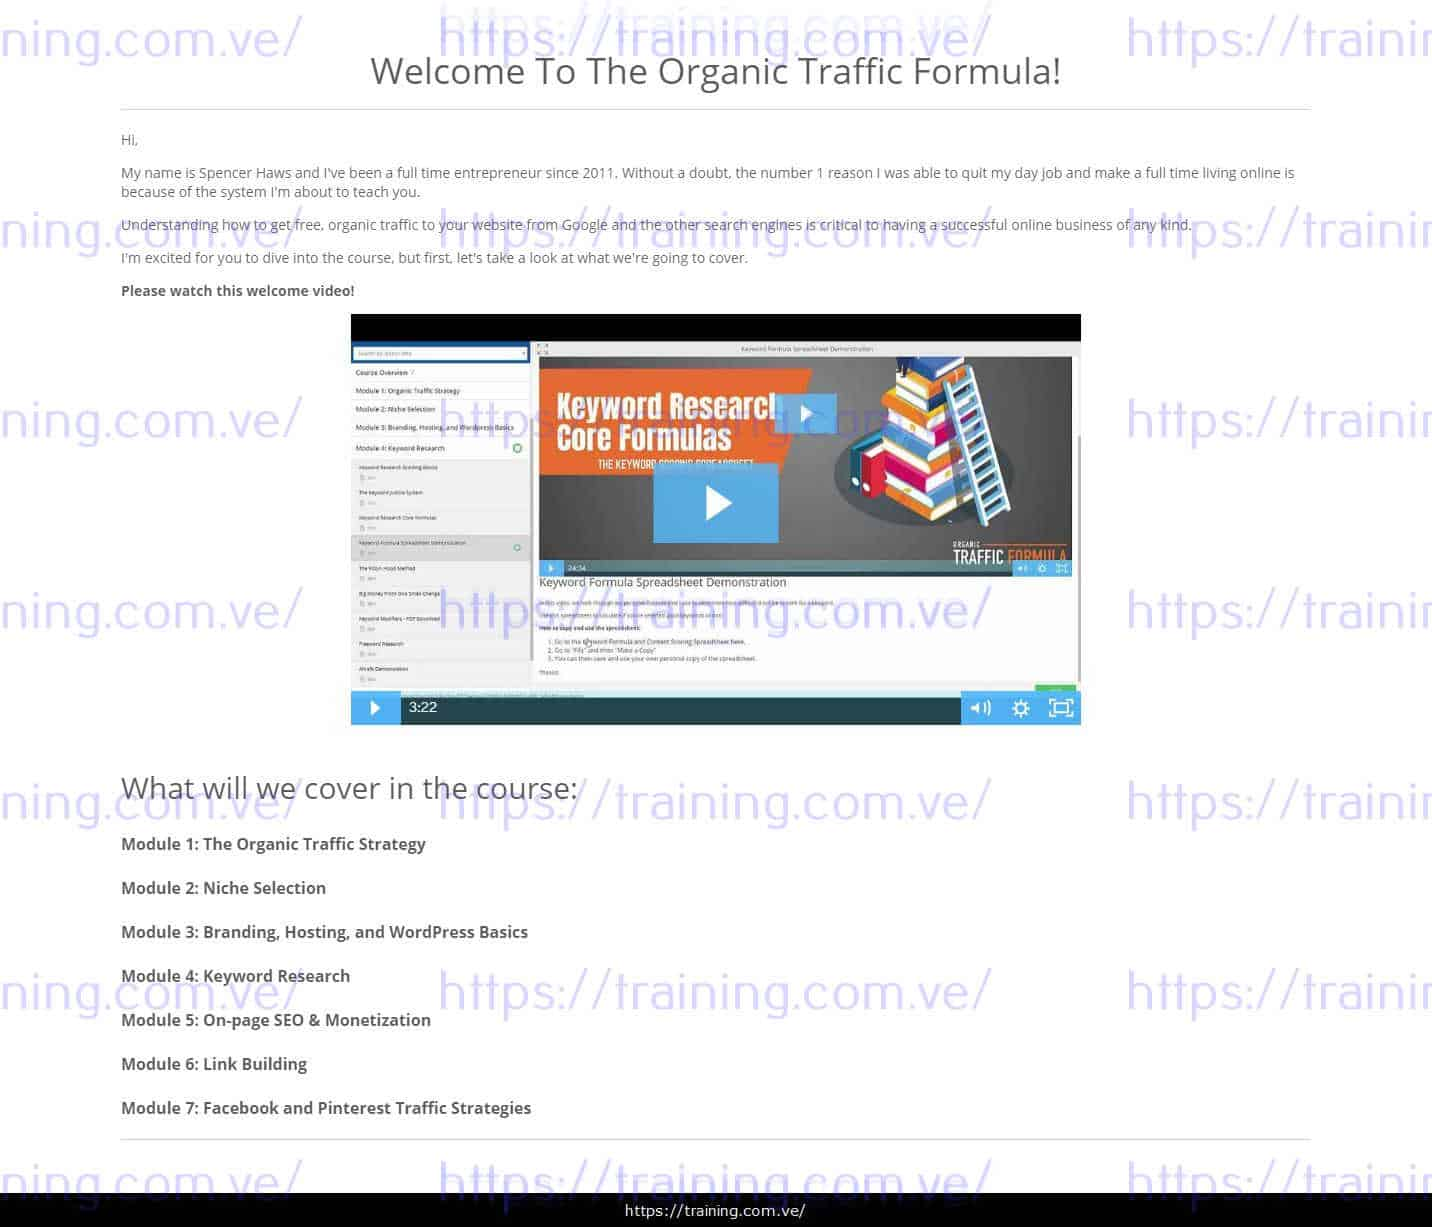 The Organic Traffic Formula by Spencer Haws Download